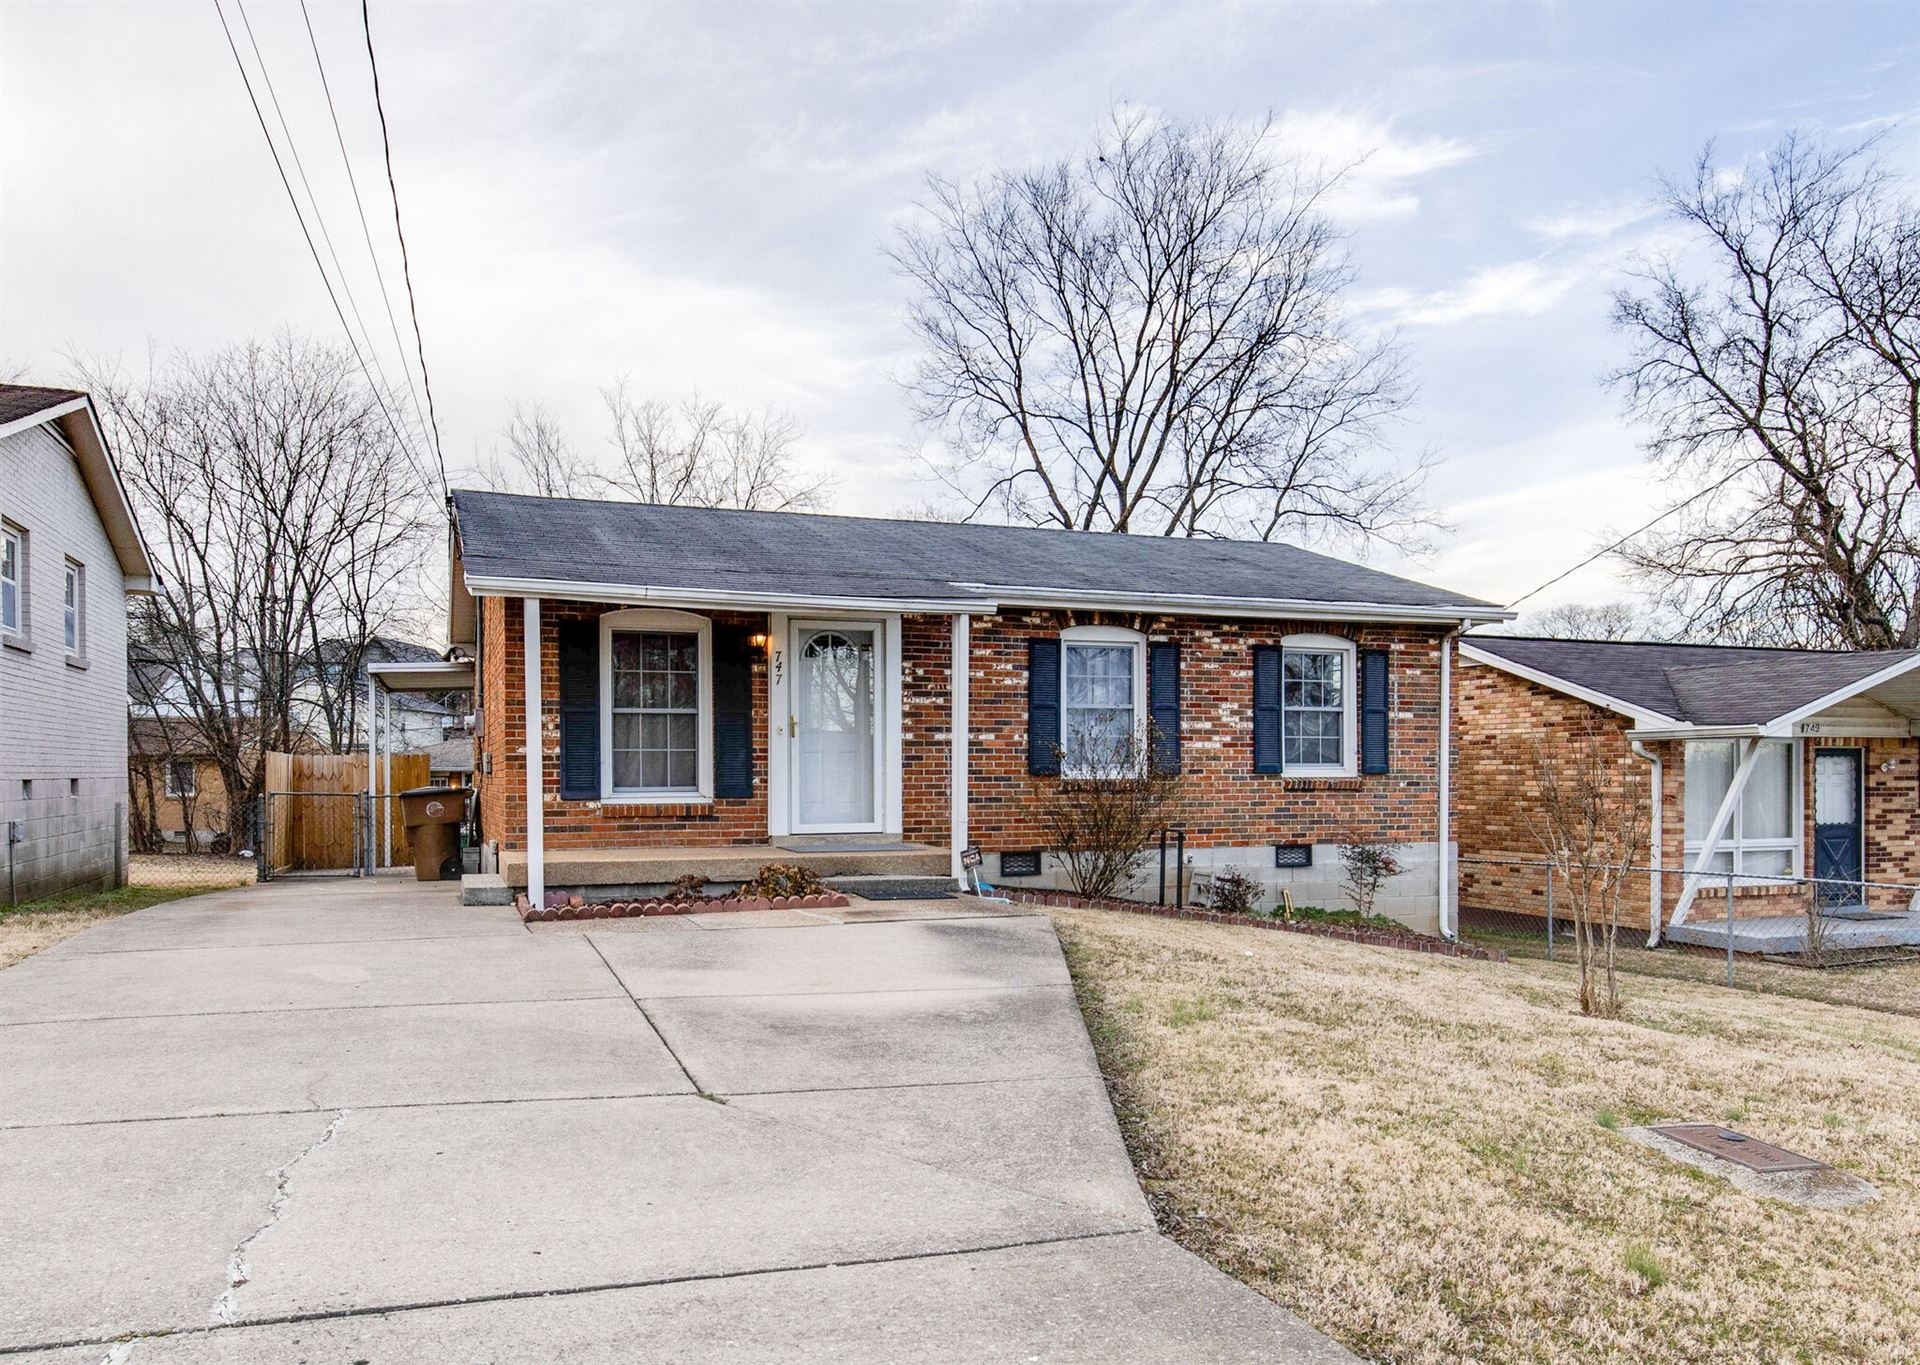 Photo of 747 Croley Dr, Nashville, TN 37209 (MLS # 2222506)